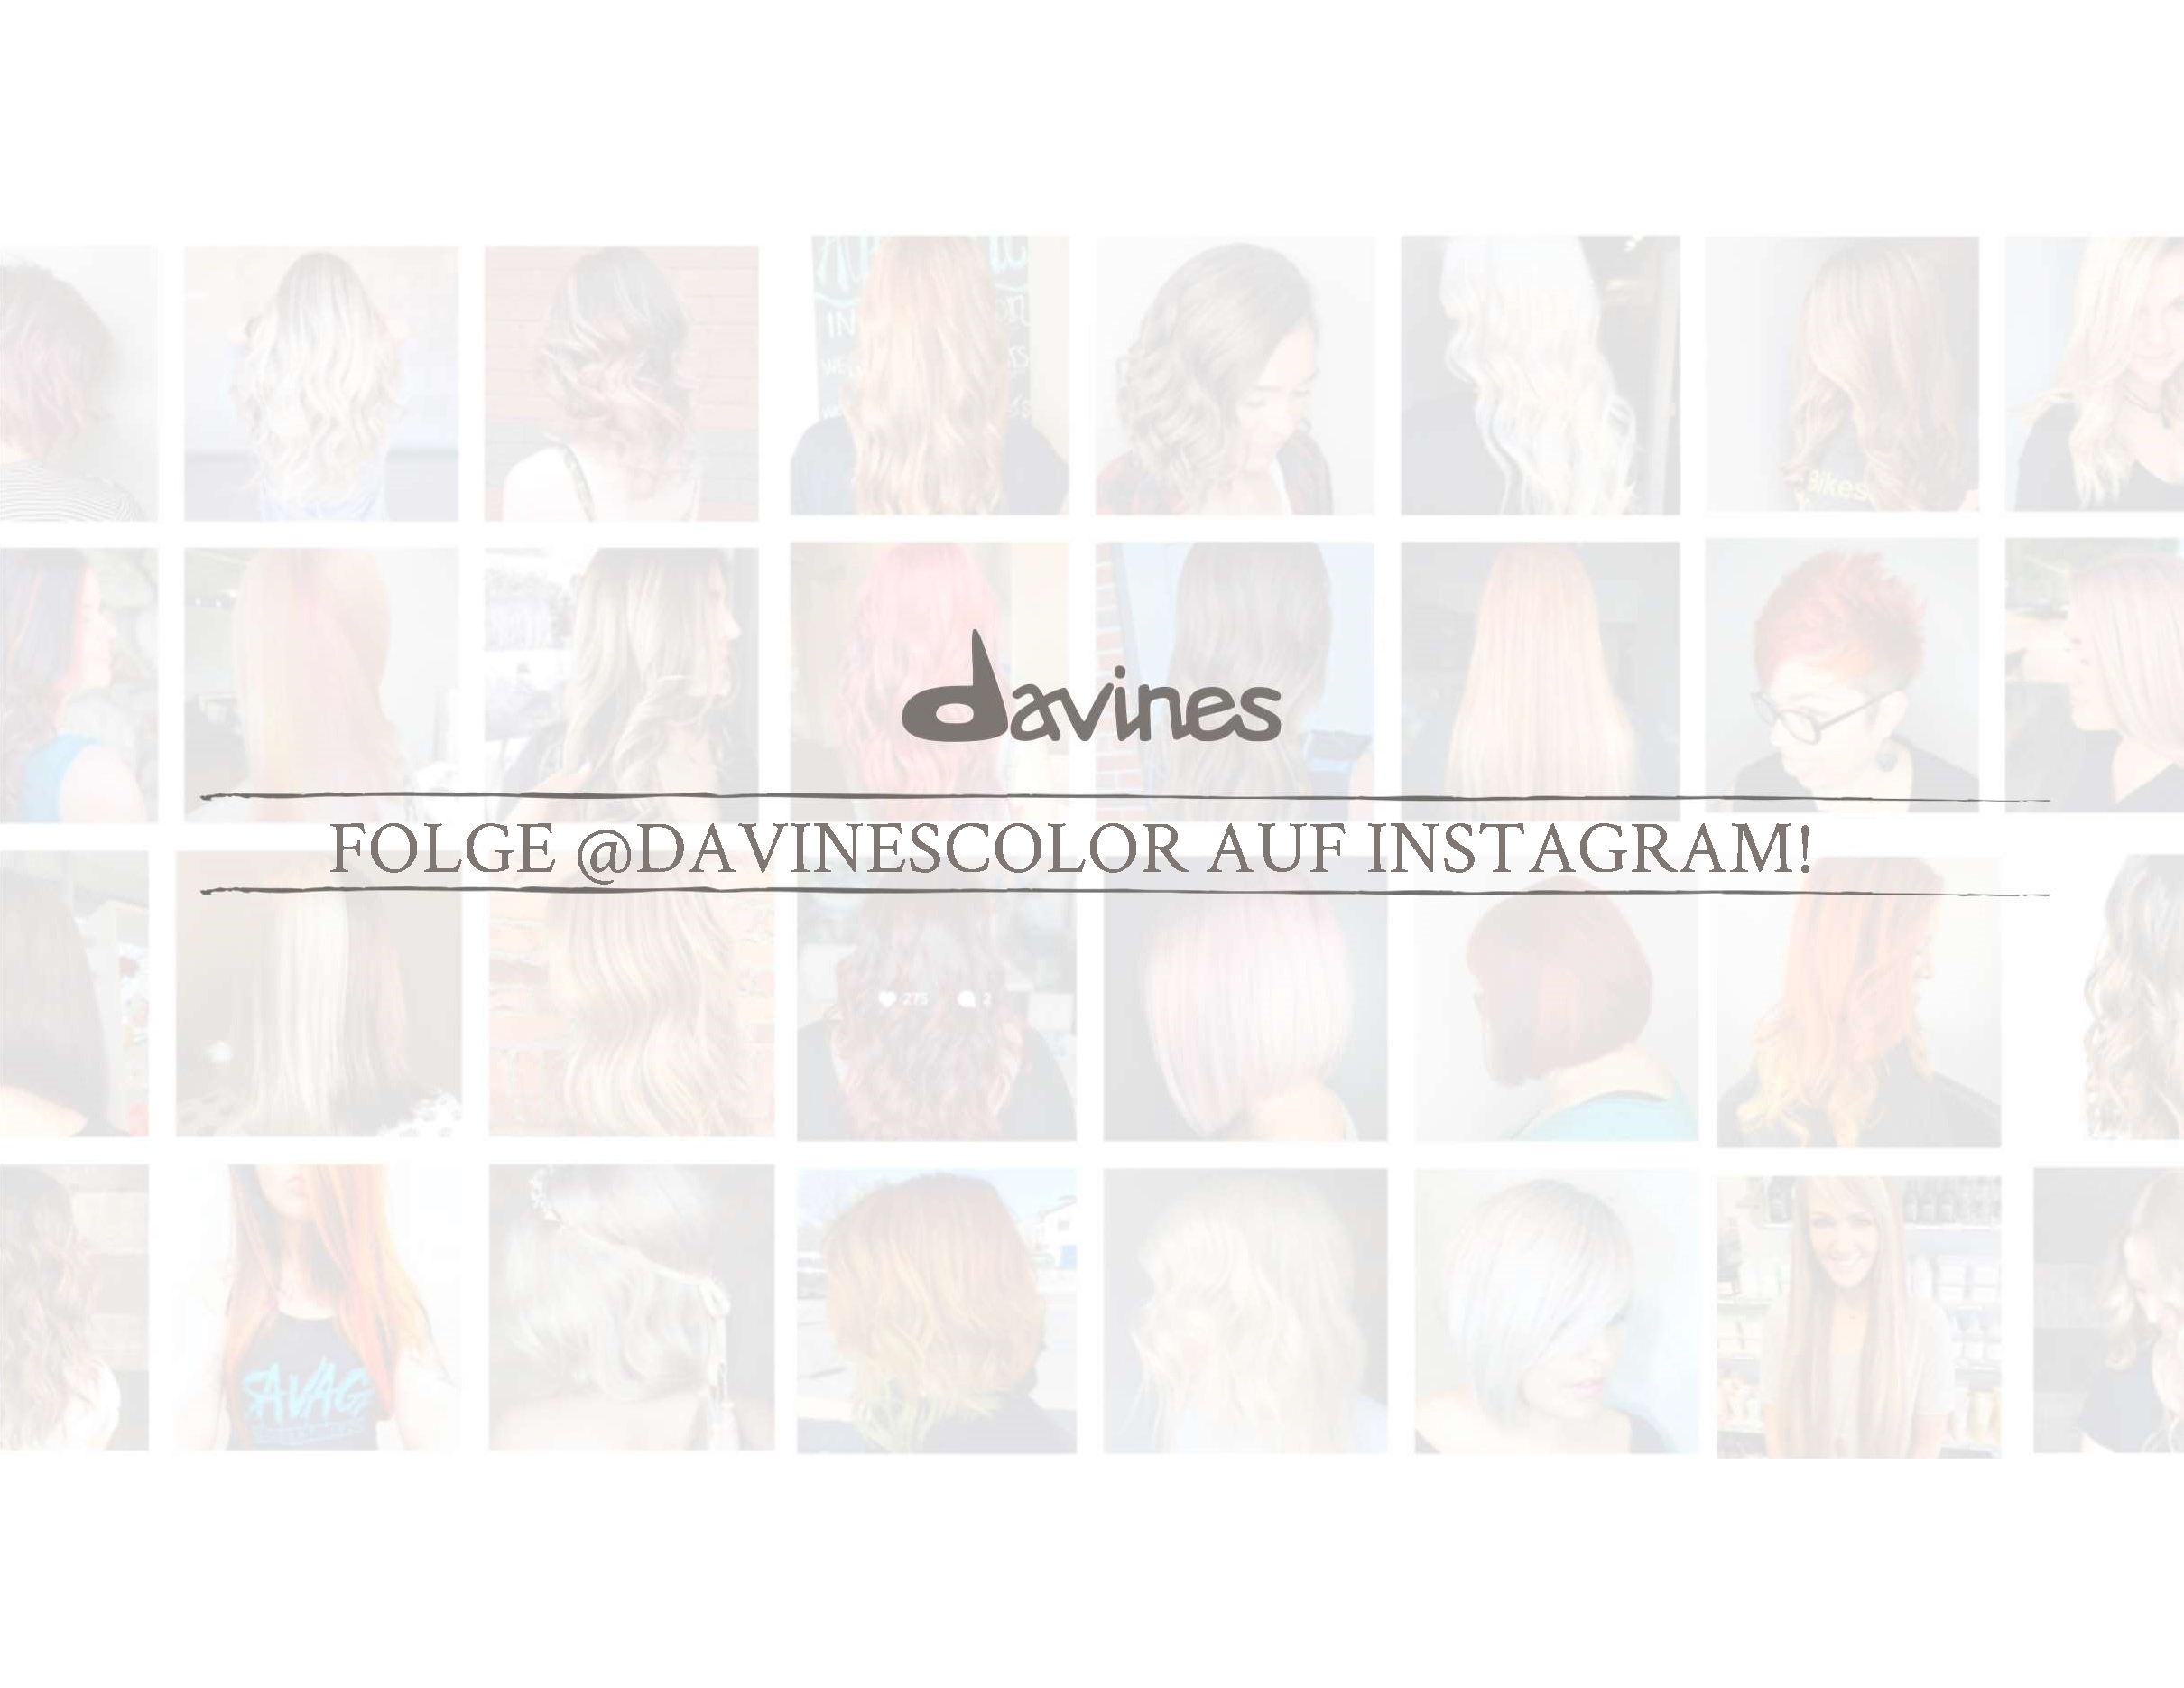 Davines - Instagram Color -presentation-D_Seite_1